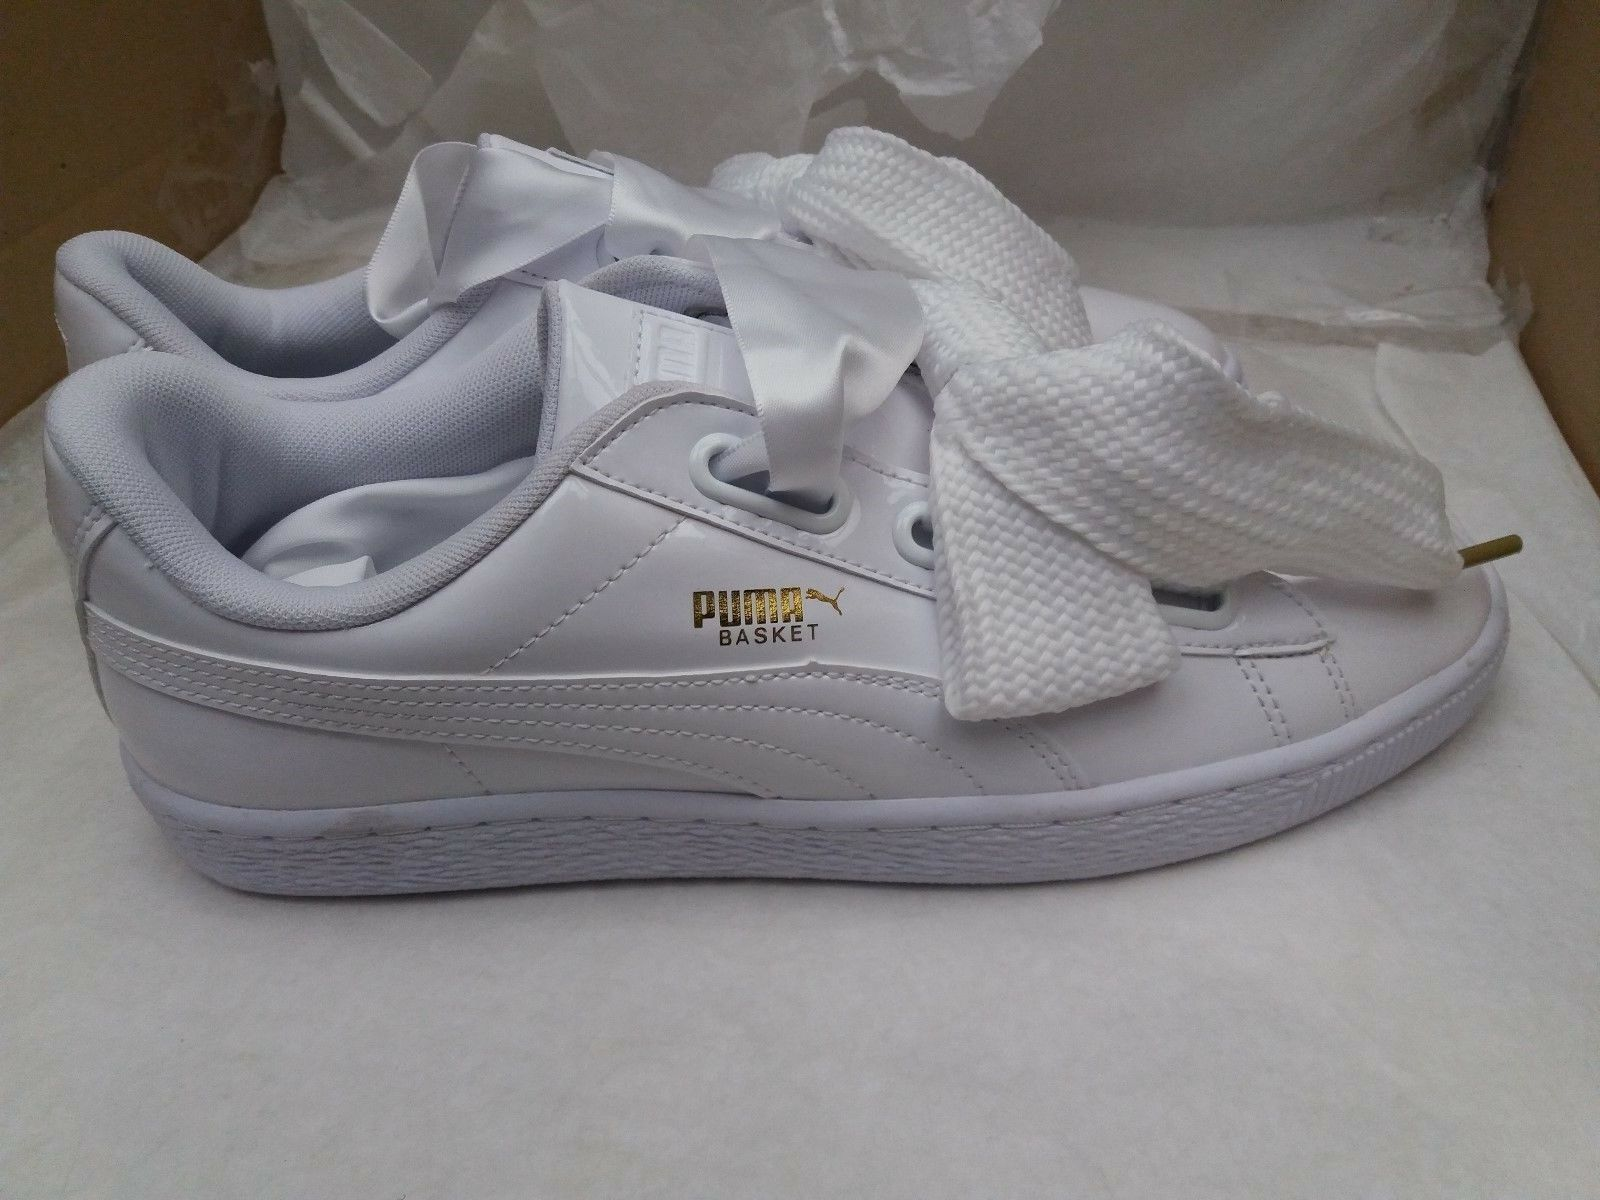 Puma Basket Heart Patent Leather Gloss White gold Trainers 363073 02 UK 7.5